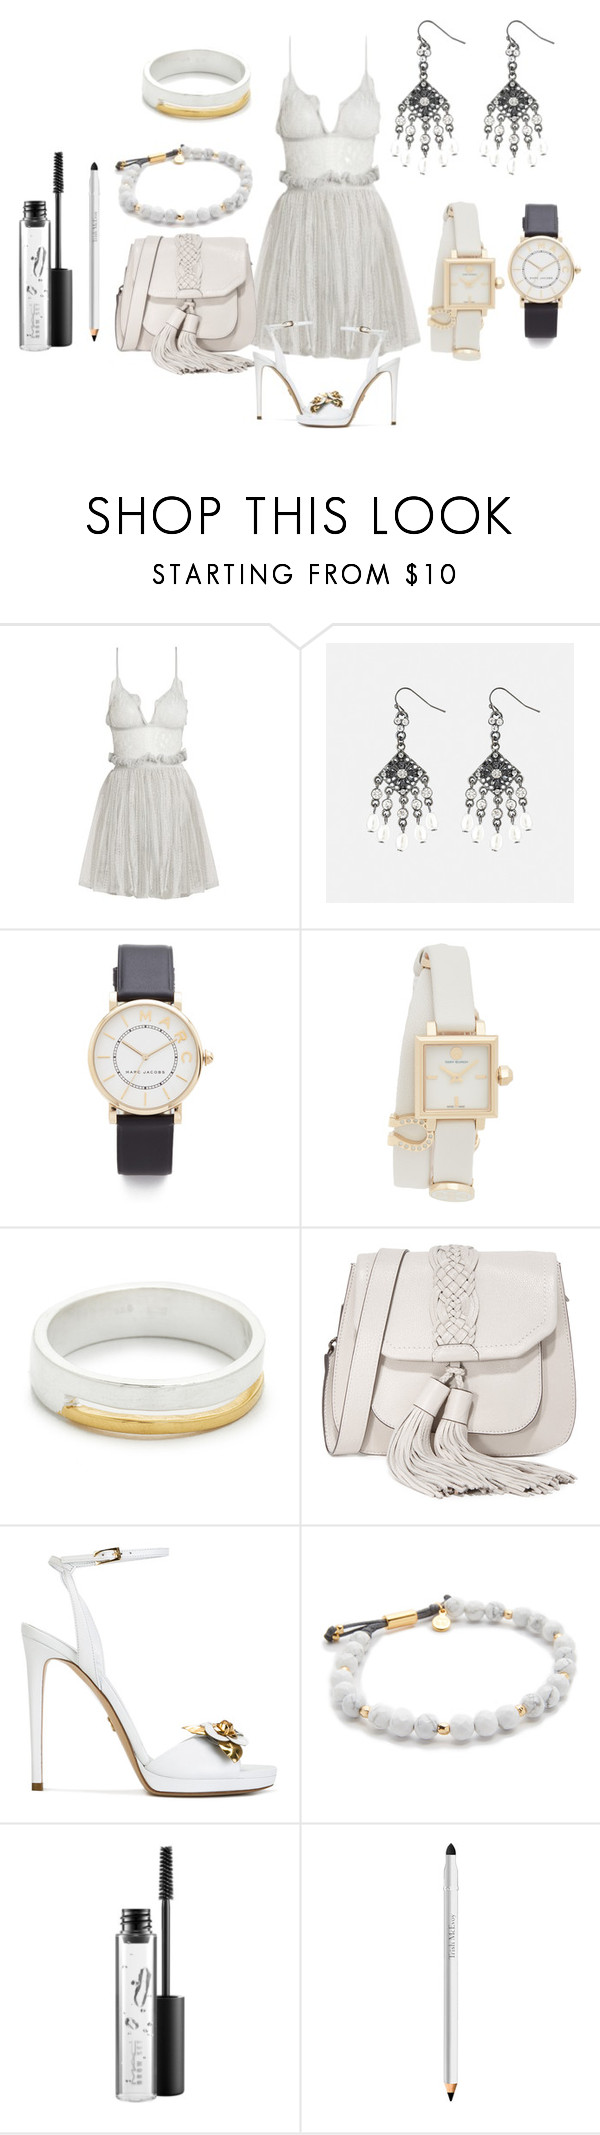 """Simple yet gorgeous"" by hillarymaguire ❤ liked on Polyvore featuring Alexander McQueen, Avenue, Marc Jacobs, Tory Burch, Maya Magal, Rebecca Minkoff, Loriblu, Gorjana, MAC Cosmetics and Trish McEvoy"